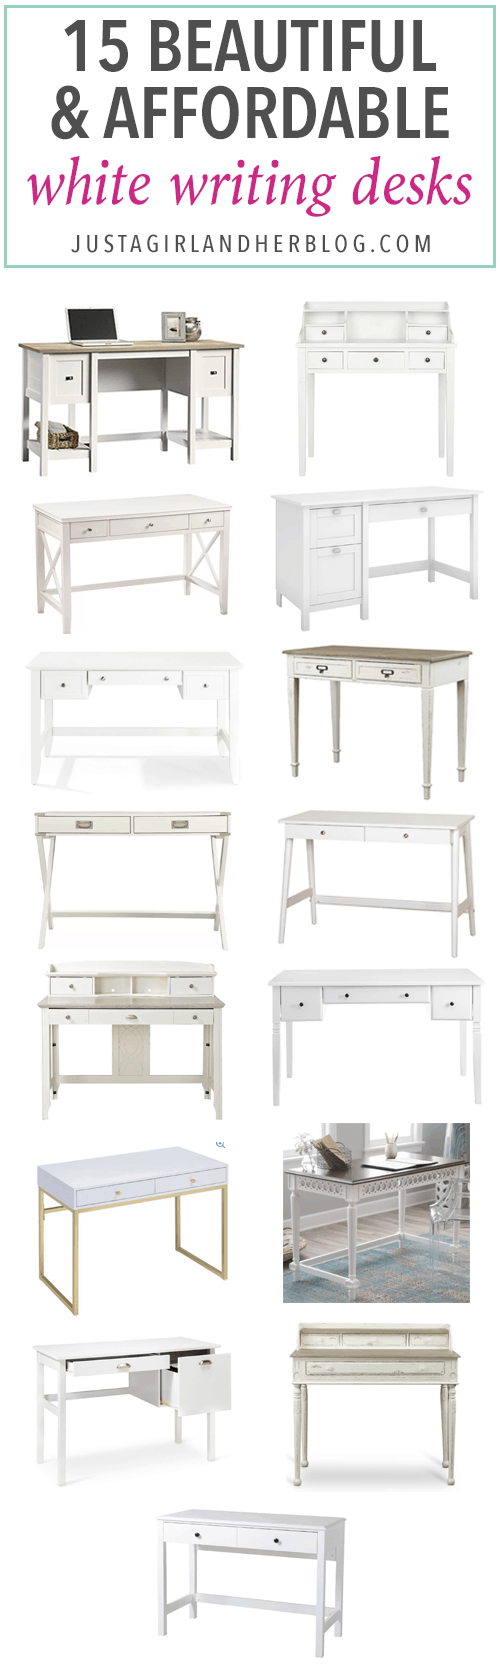 Love these options for beautiful and affordable white writing desks-- they would be perfect in a feminine home office! | desks, computer desk, office organization, organized office, white furniture, farmhouse style, cottage style, glam style, modern style, rustic style desks